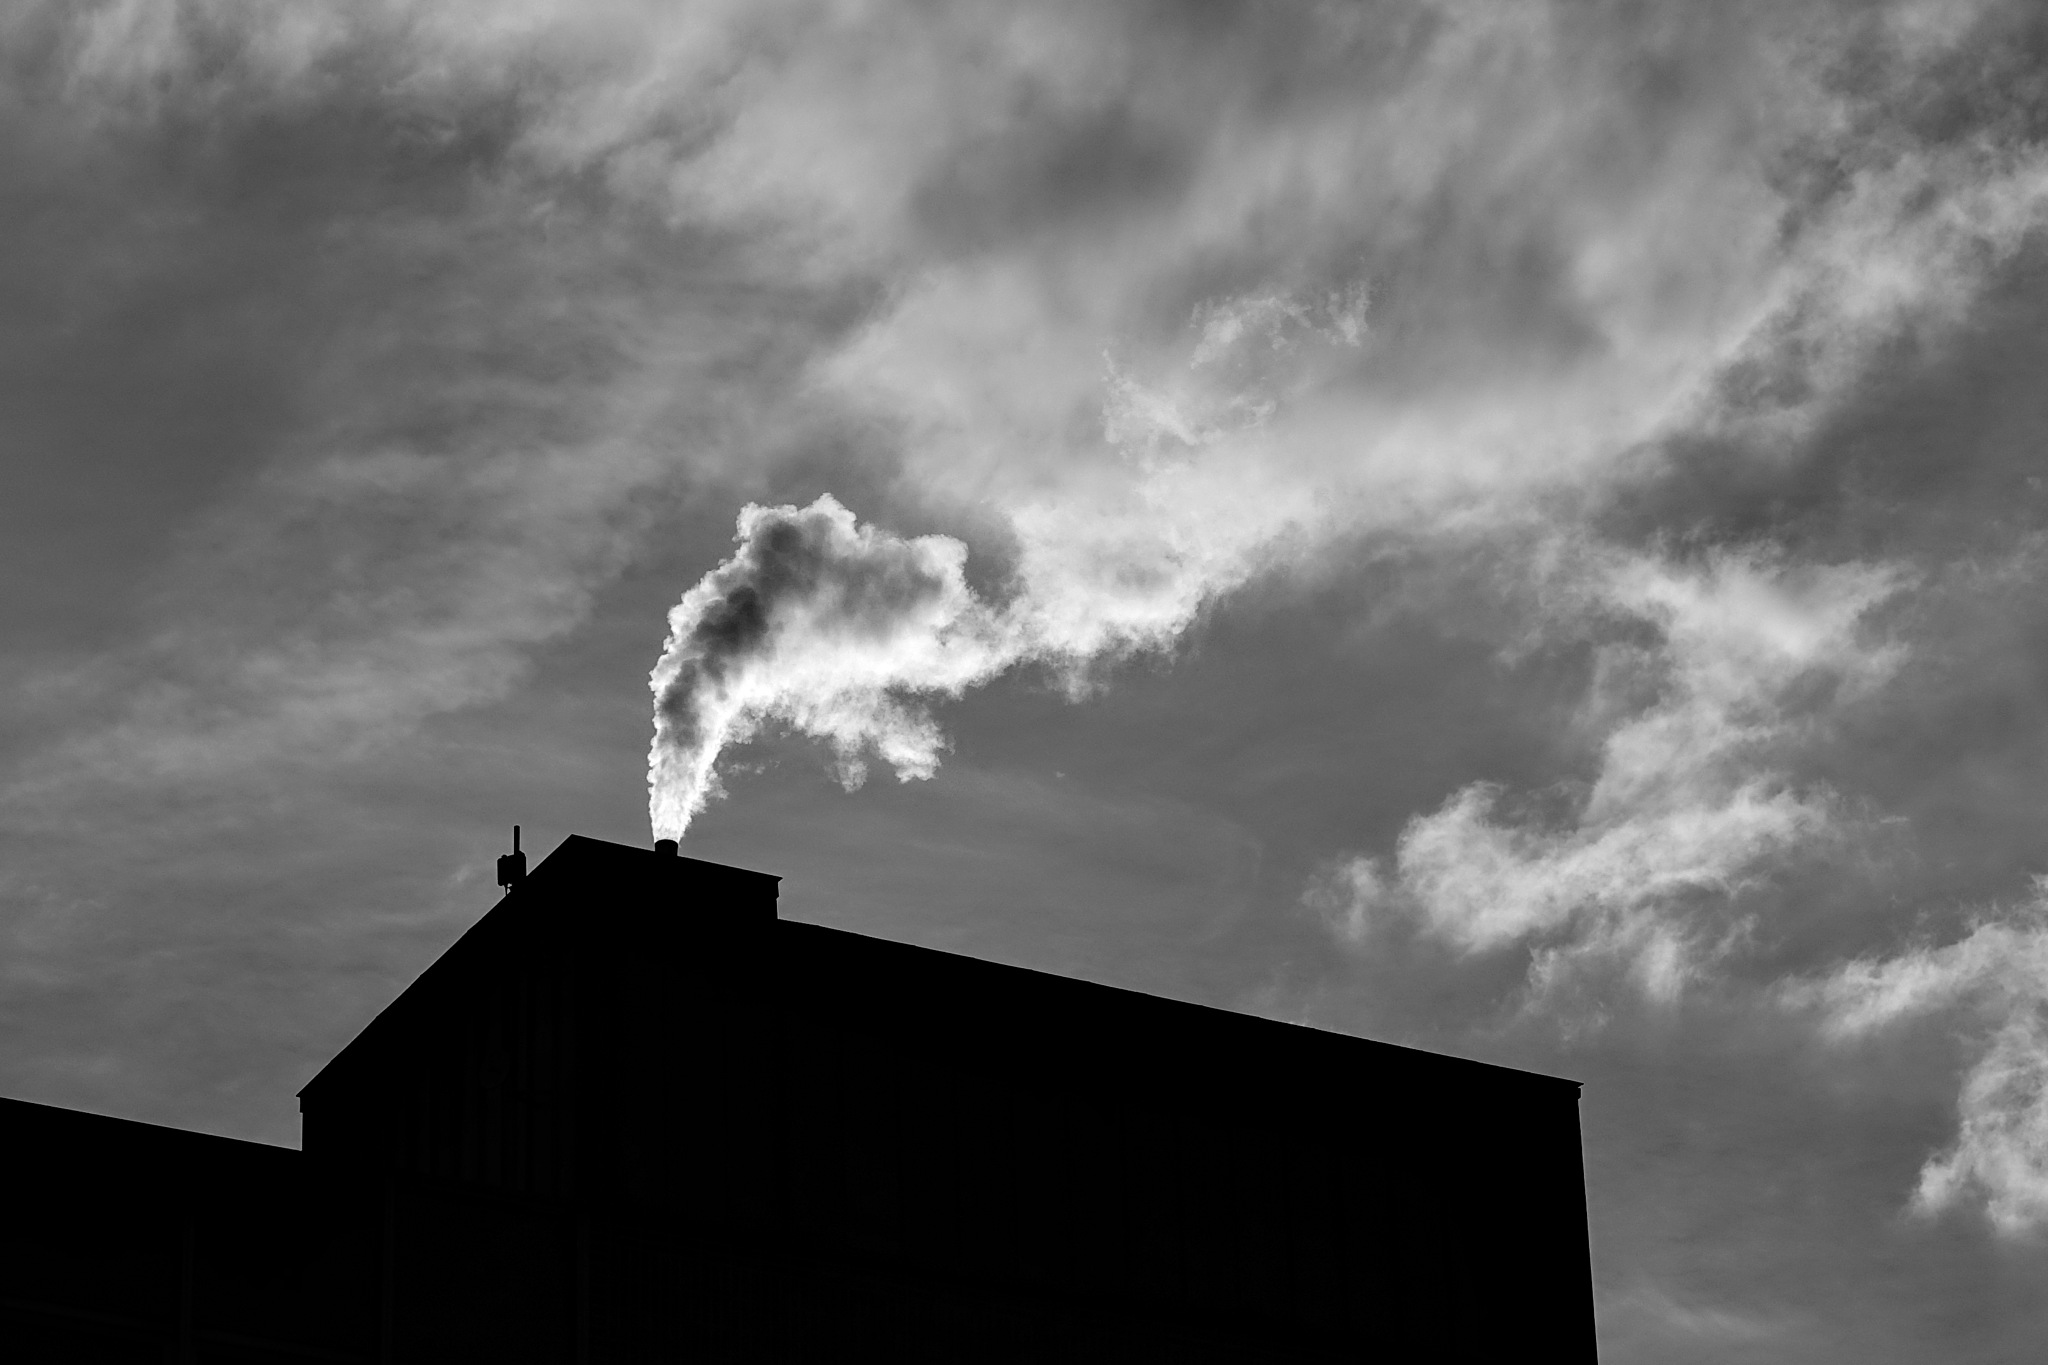 smoke into clouds by Tom Eppelin